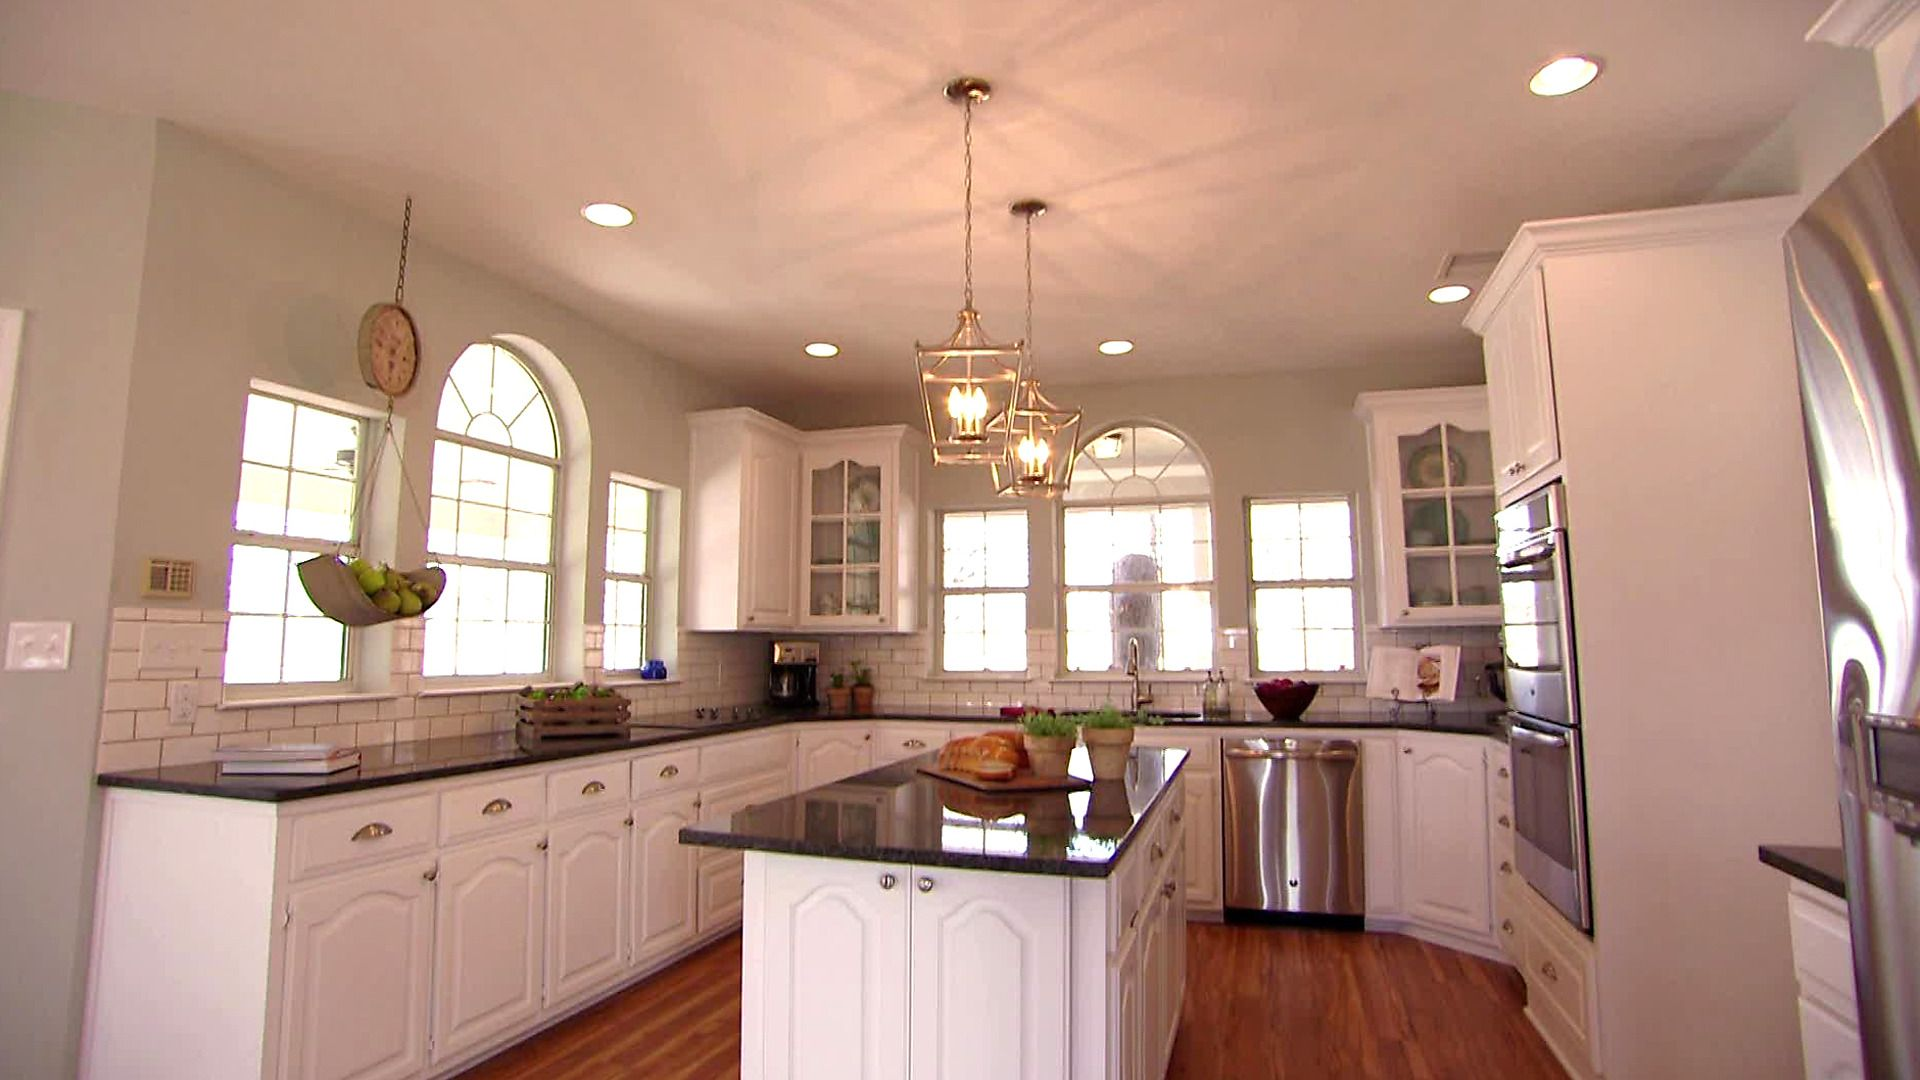 French Country Fixer Upper Kitchens Videos Hgtv 39s Fixer Upper With Chip And Joanna Gaines